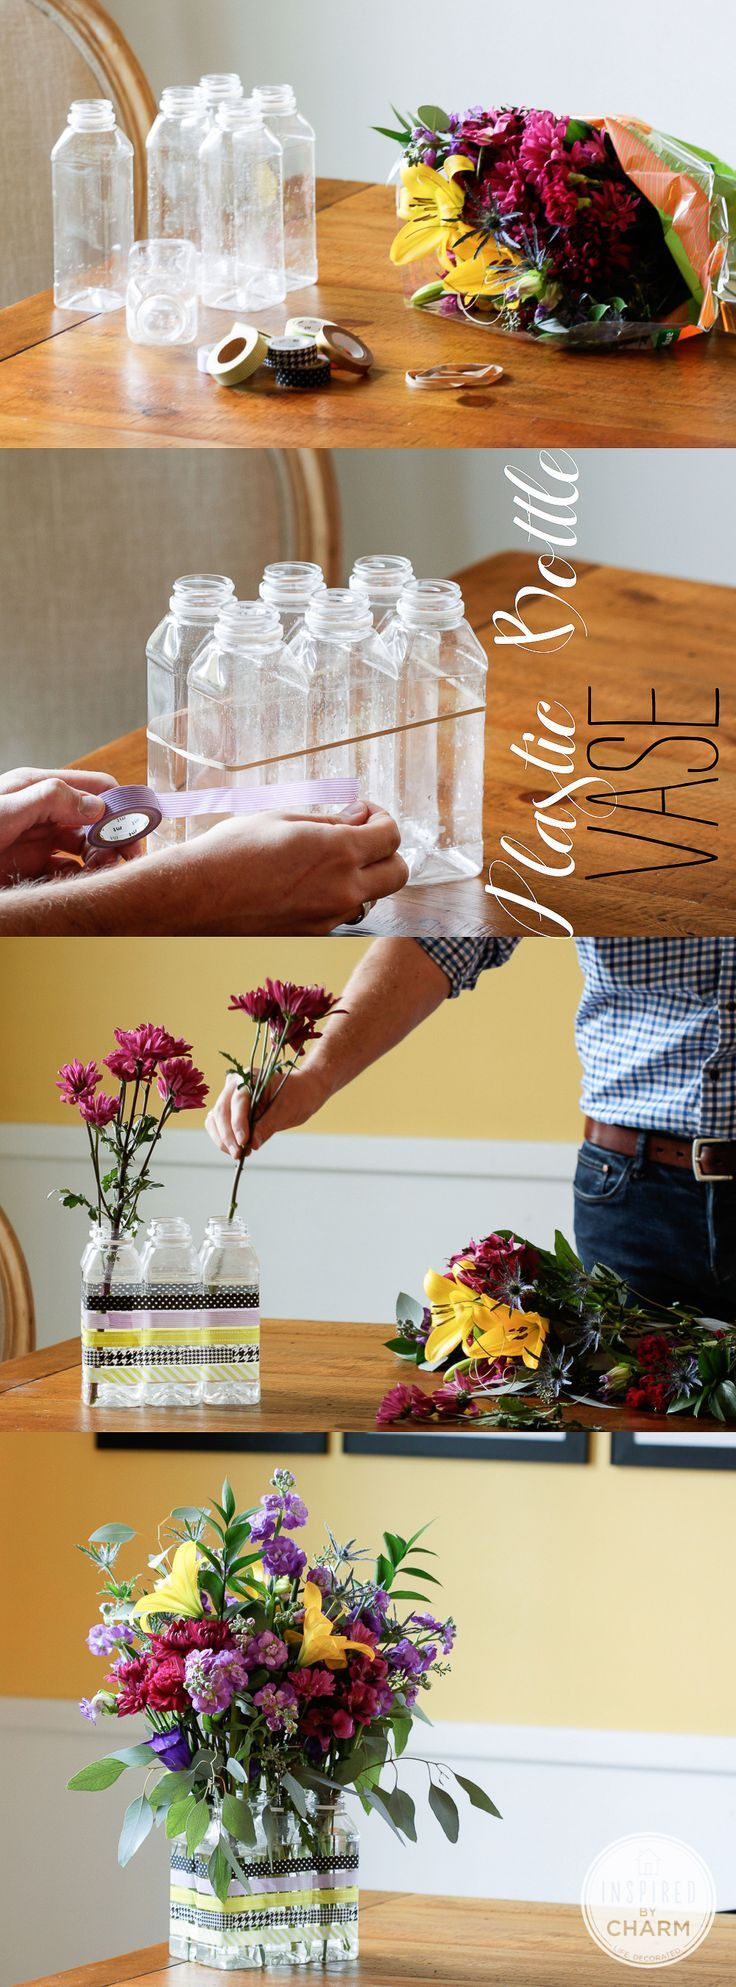 Make a Flower Vase out of Plastic Bottle.......... Unique Plastic Bottles Recycling Ideas For Home Decor #DIYCrafts